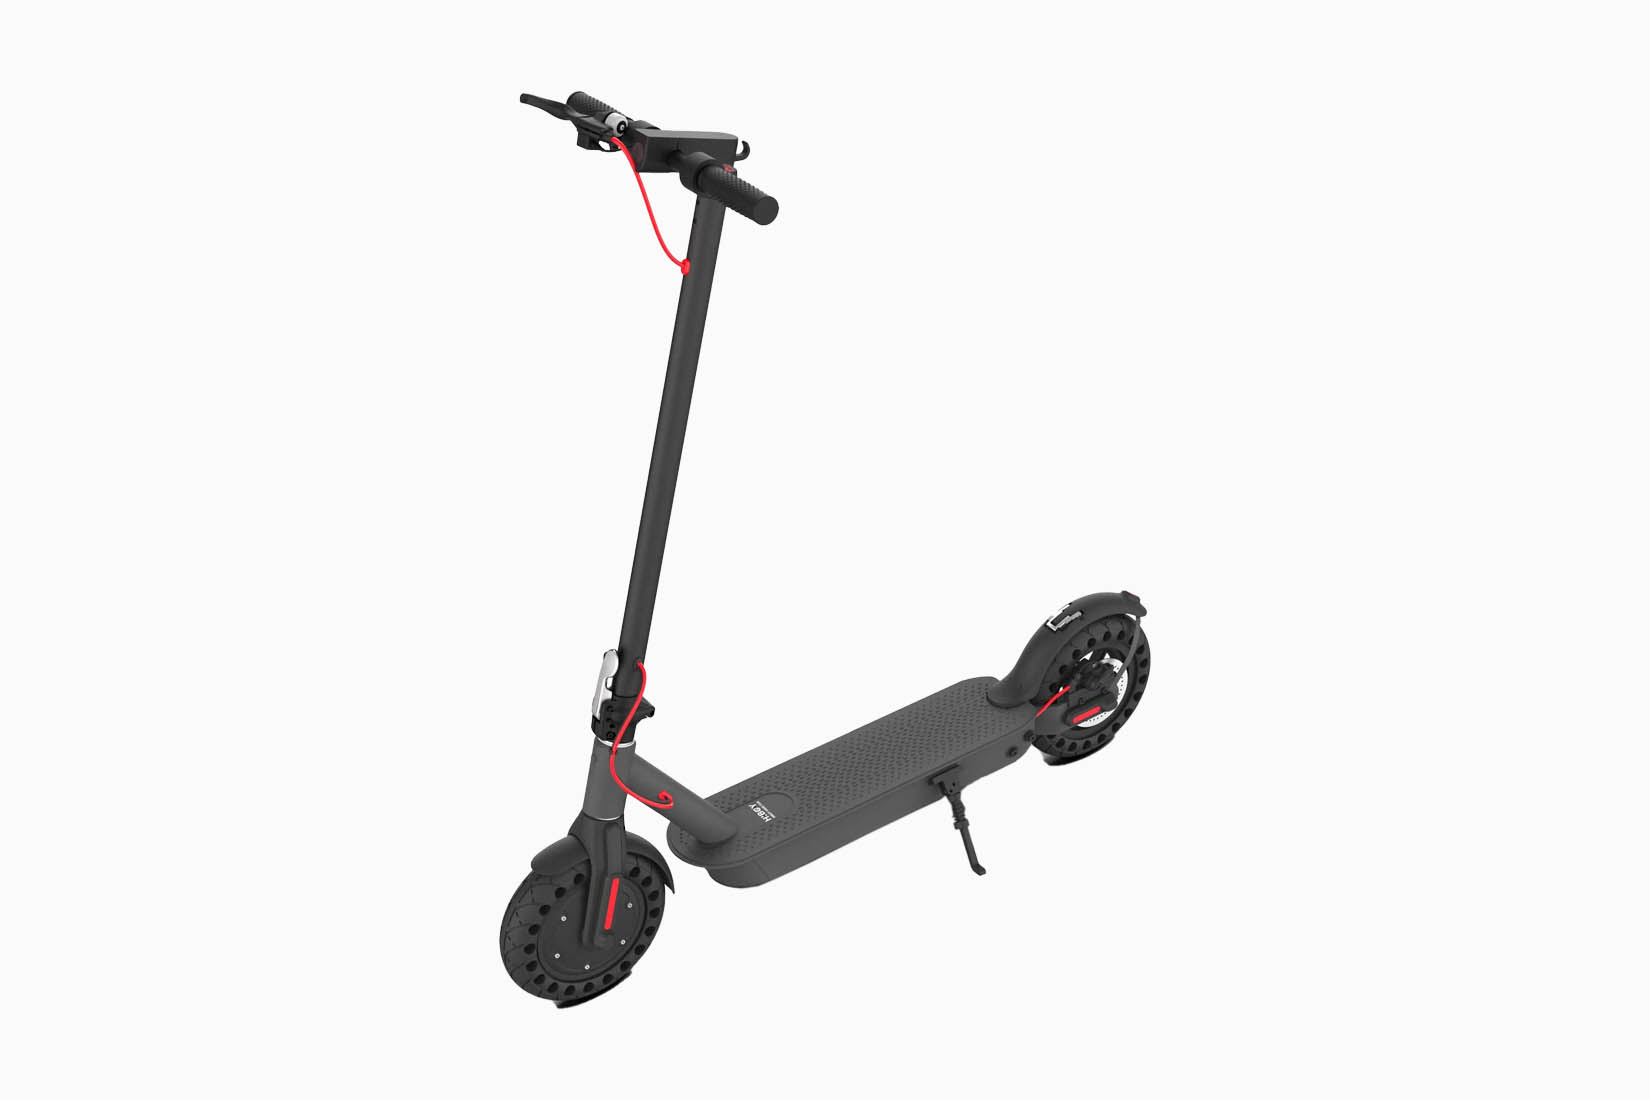 best electric scooter hiboy S2 pro review - Luxe Digital